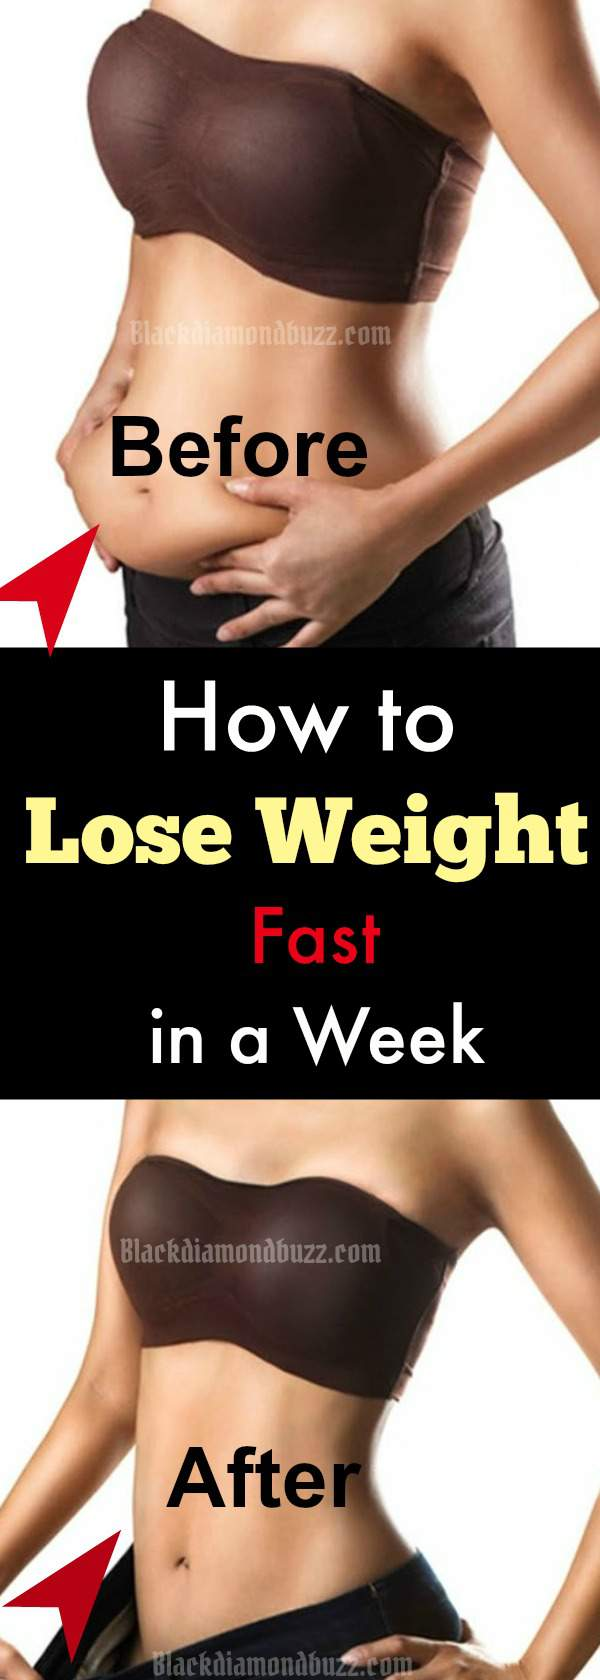 How to Lose Weight Fast with Best Diet Plan in 15 Days